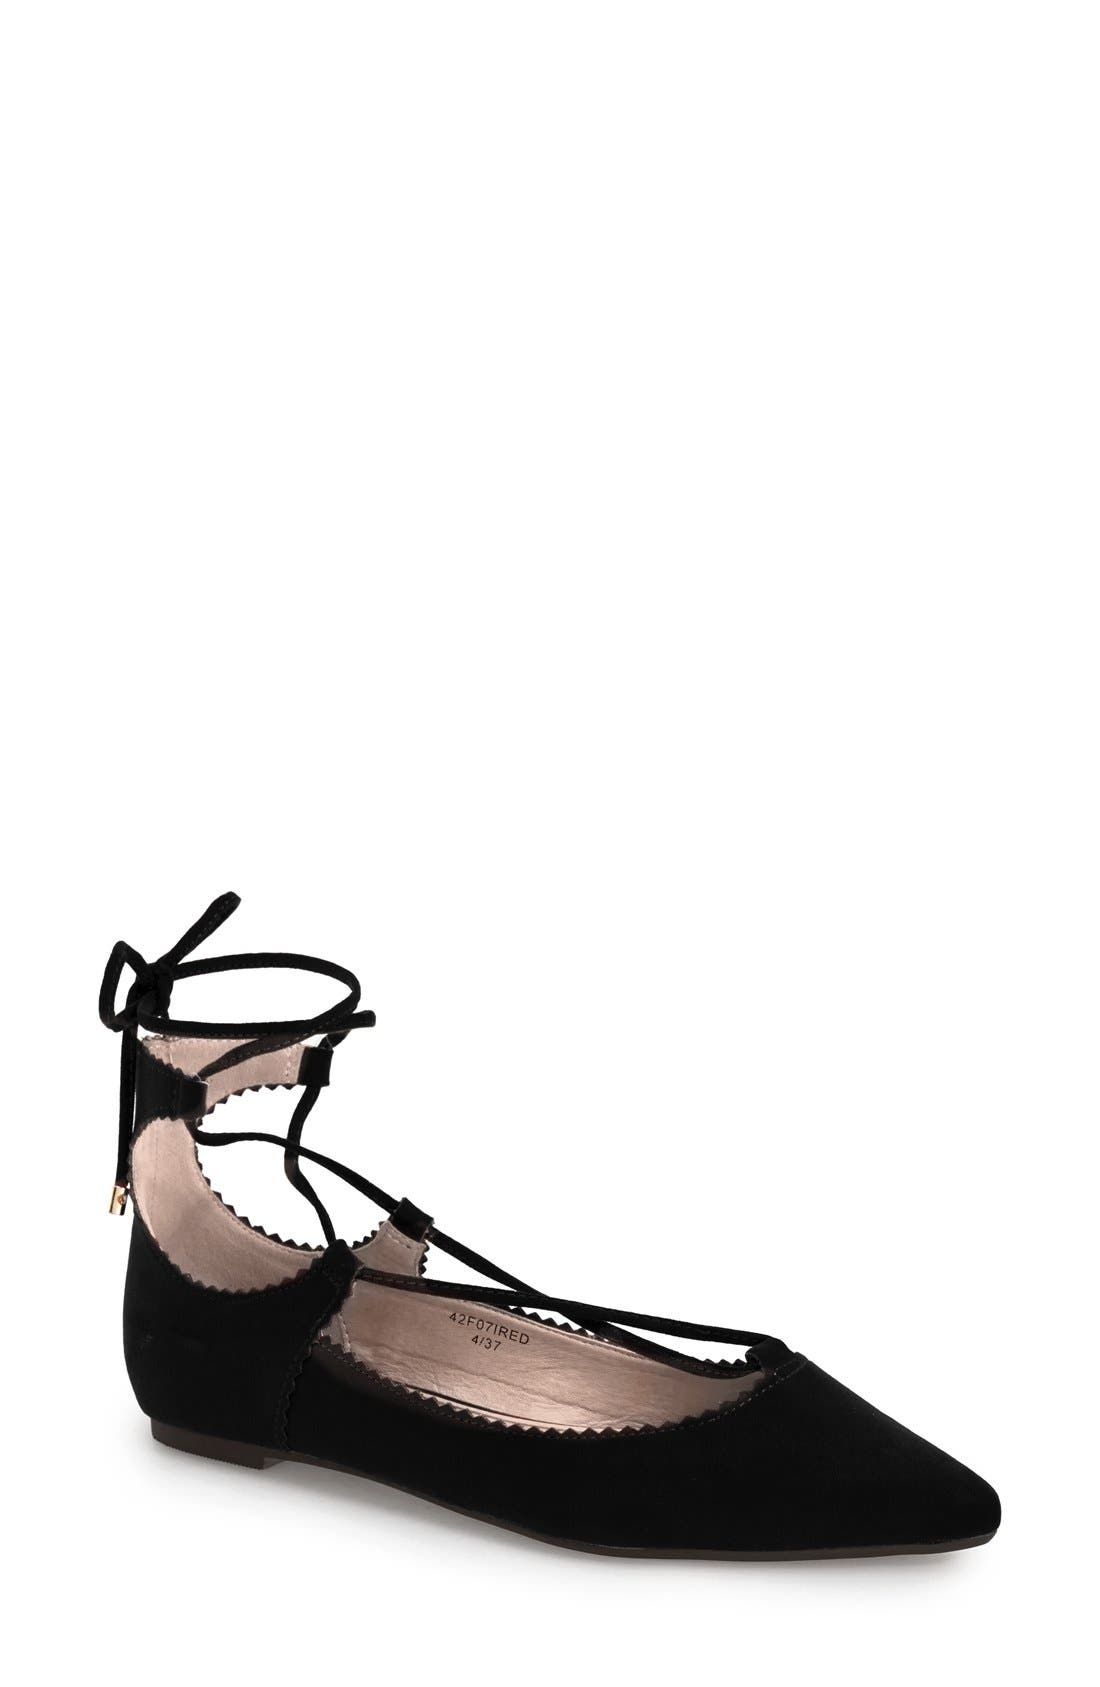 Alternate Image 1 Selected - Topshop 'Finest Shillie' Lace-Up Pointy Toe Flat (Women)